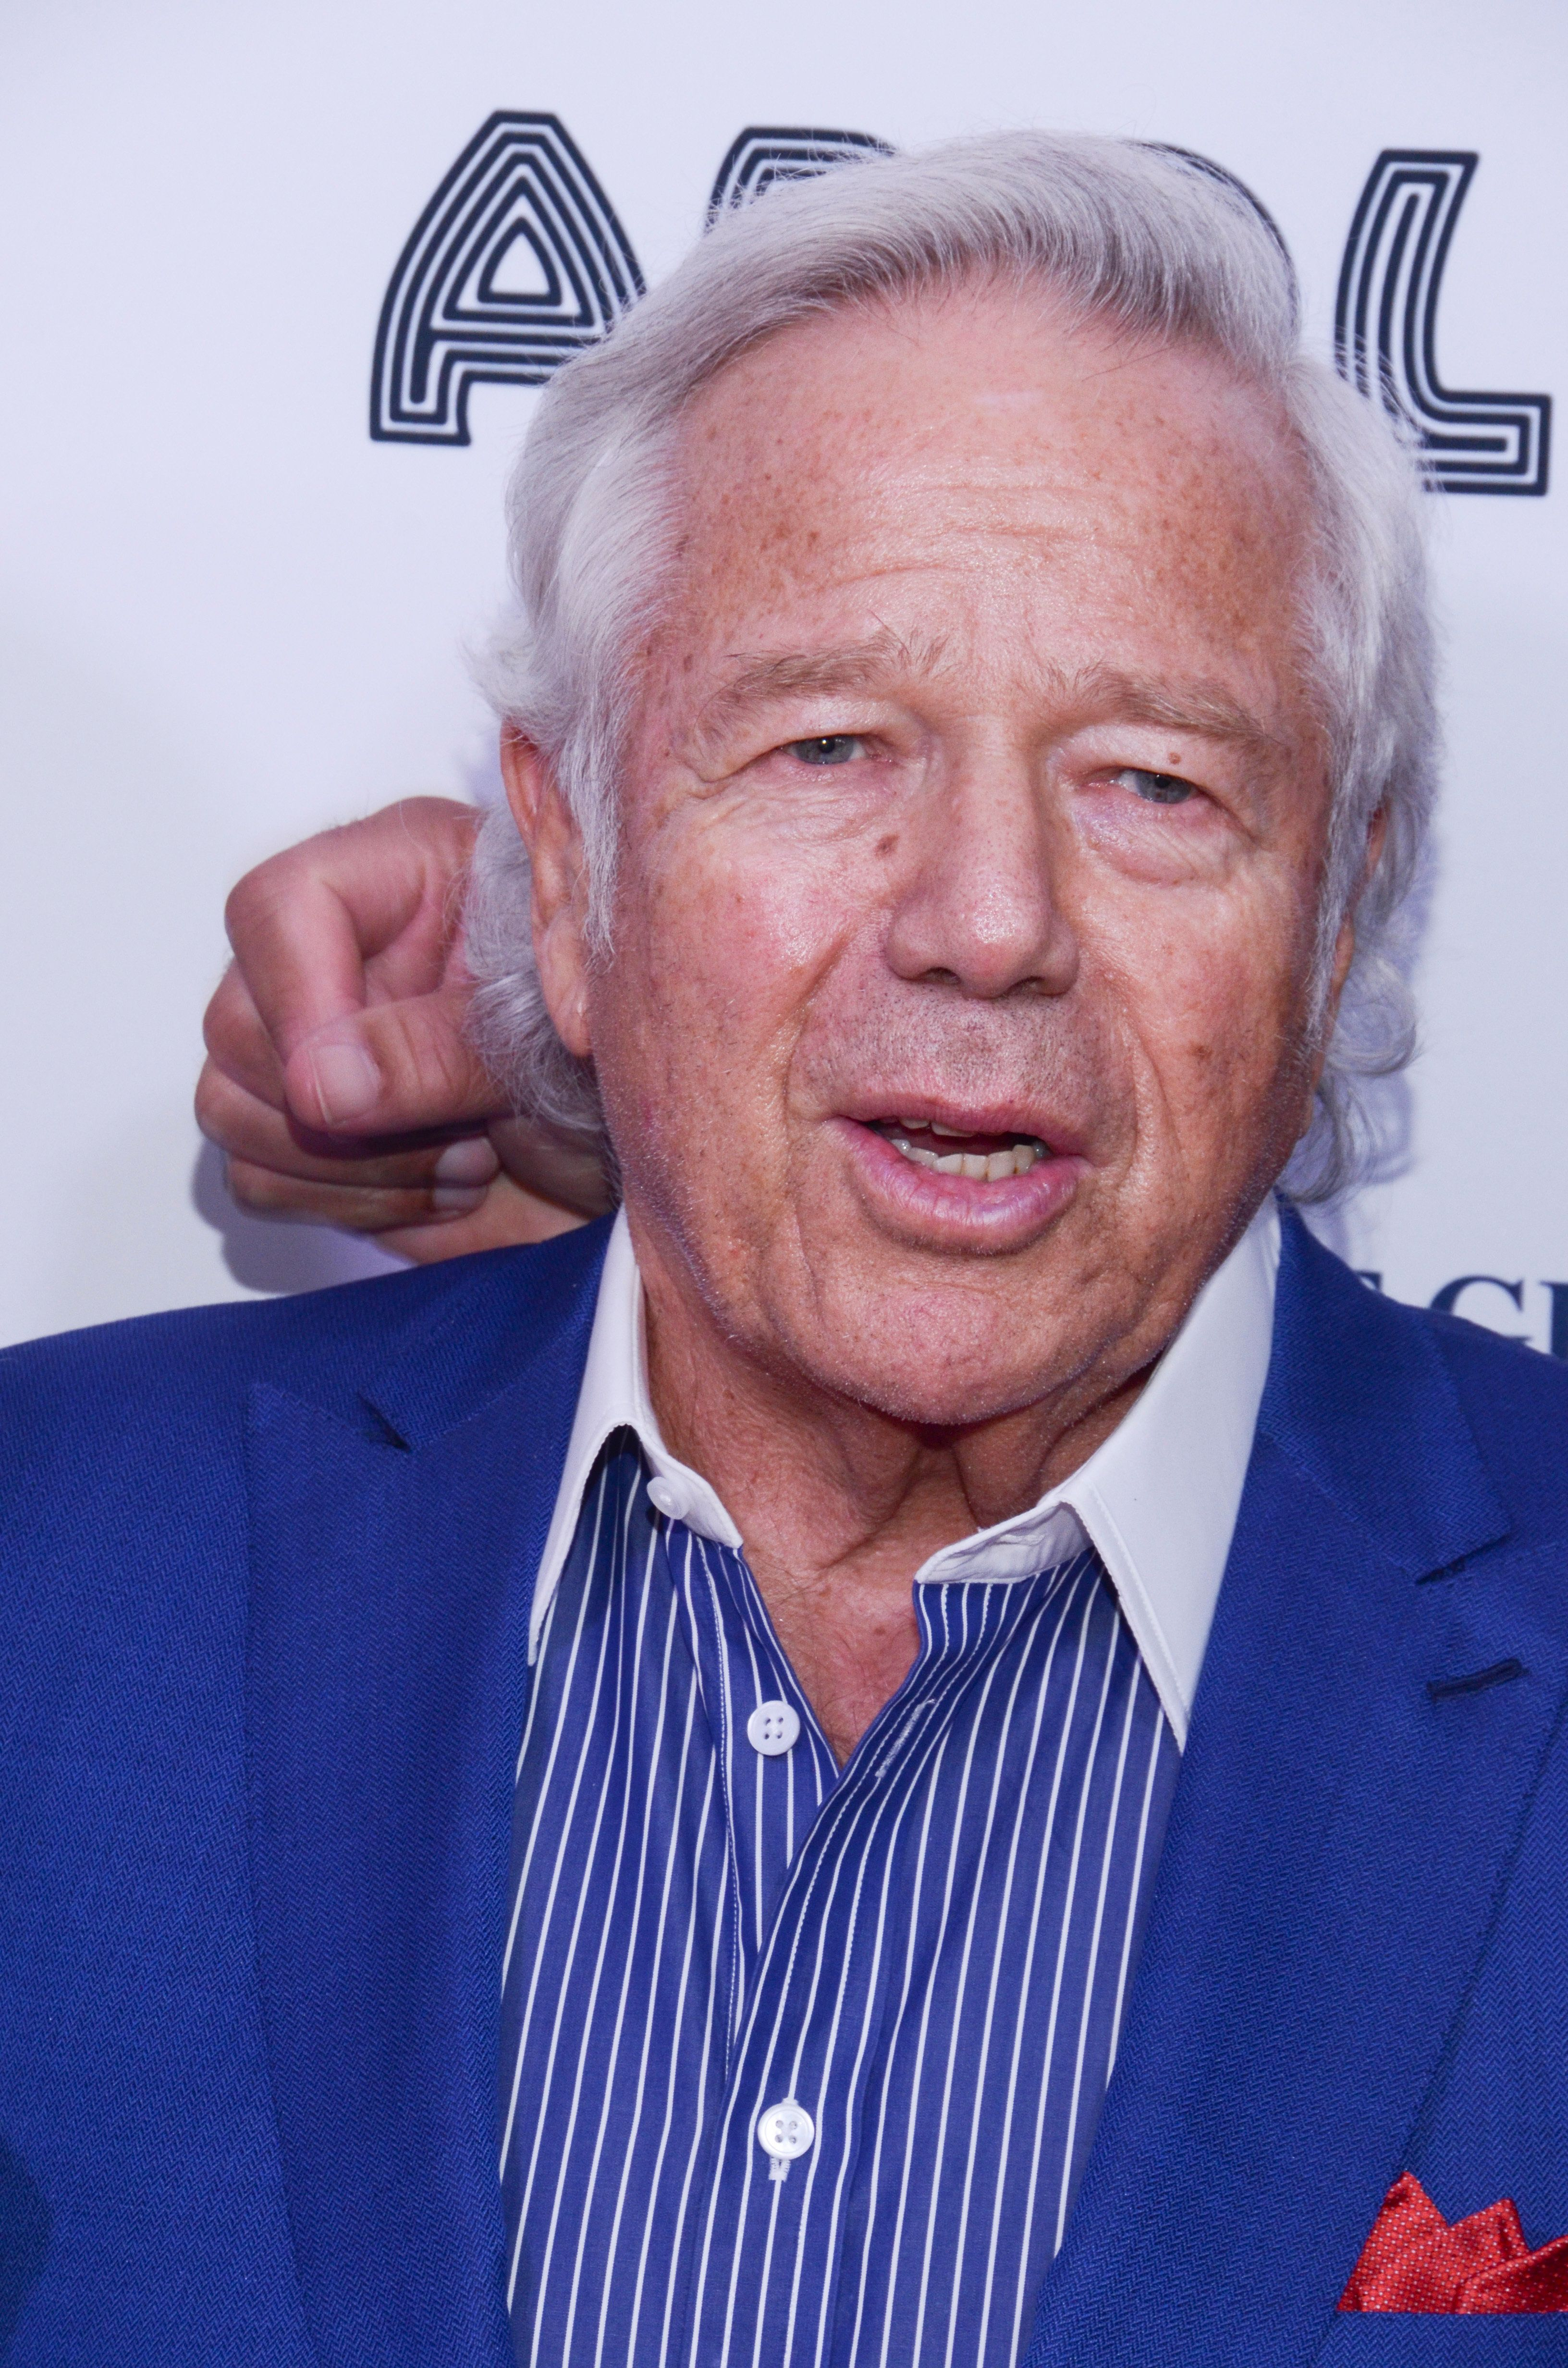 ***FILE PHOTO*** Robert Kraft Charged With Two Counts OF Soliciting Prostitution In Florida NEW YORK, NY - JUNE 4: Robert Kraft attends the Apollo Spring Gala Red Carpet on Monday, June 4, 2018. in Harlem, New York. Credit: Raymond Hagans/MediaPunch /IPX